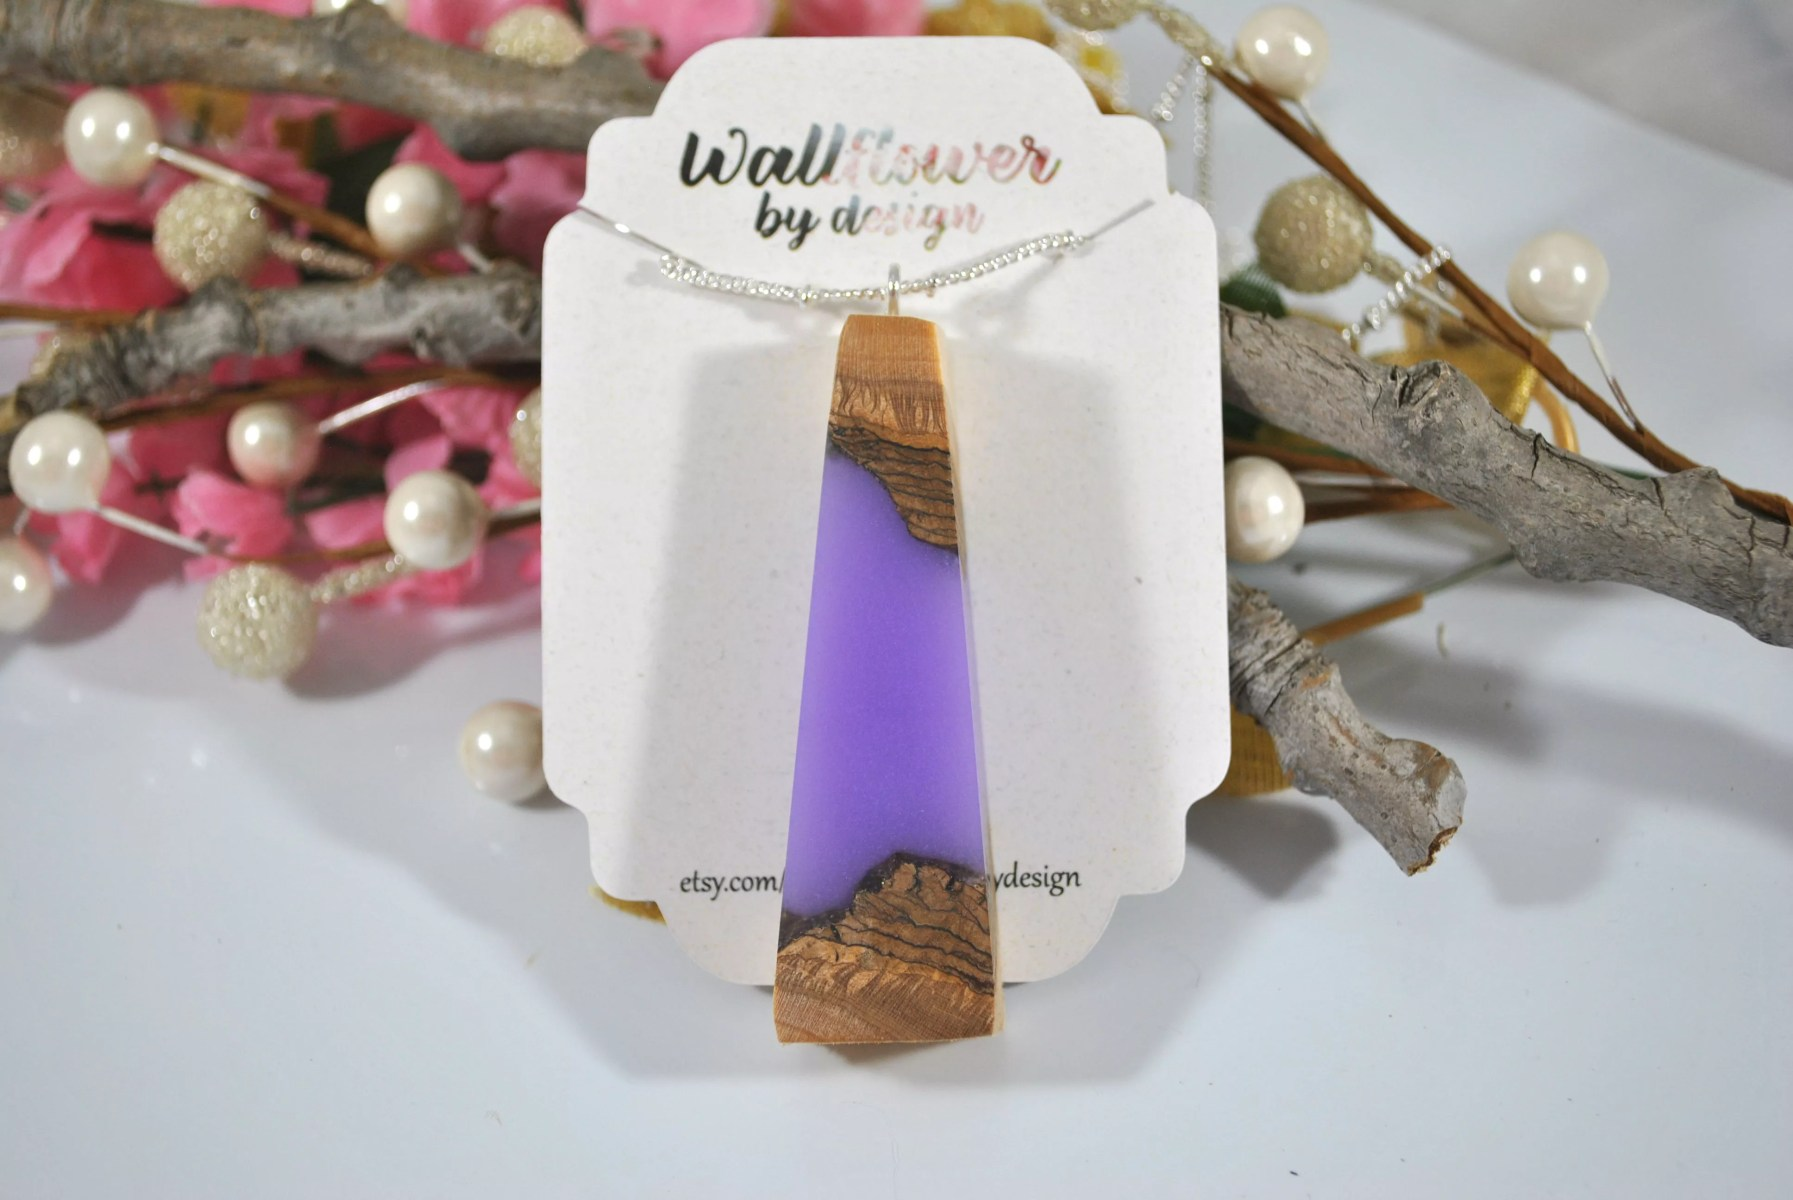 wood and lavender resin pendant on chain and in designer packaging